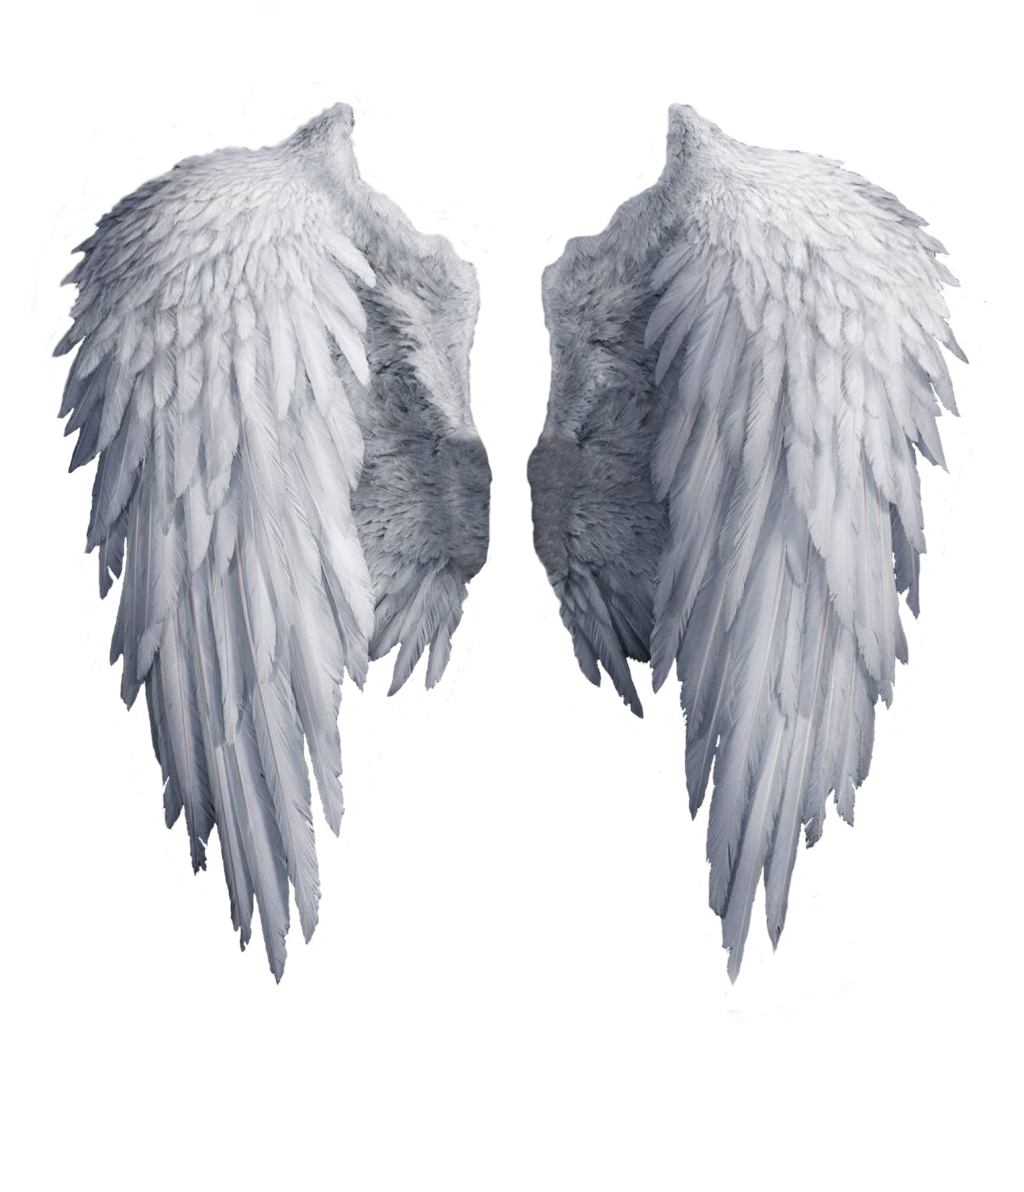 Png wings. Images free download angel